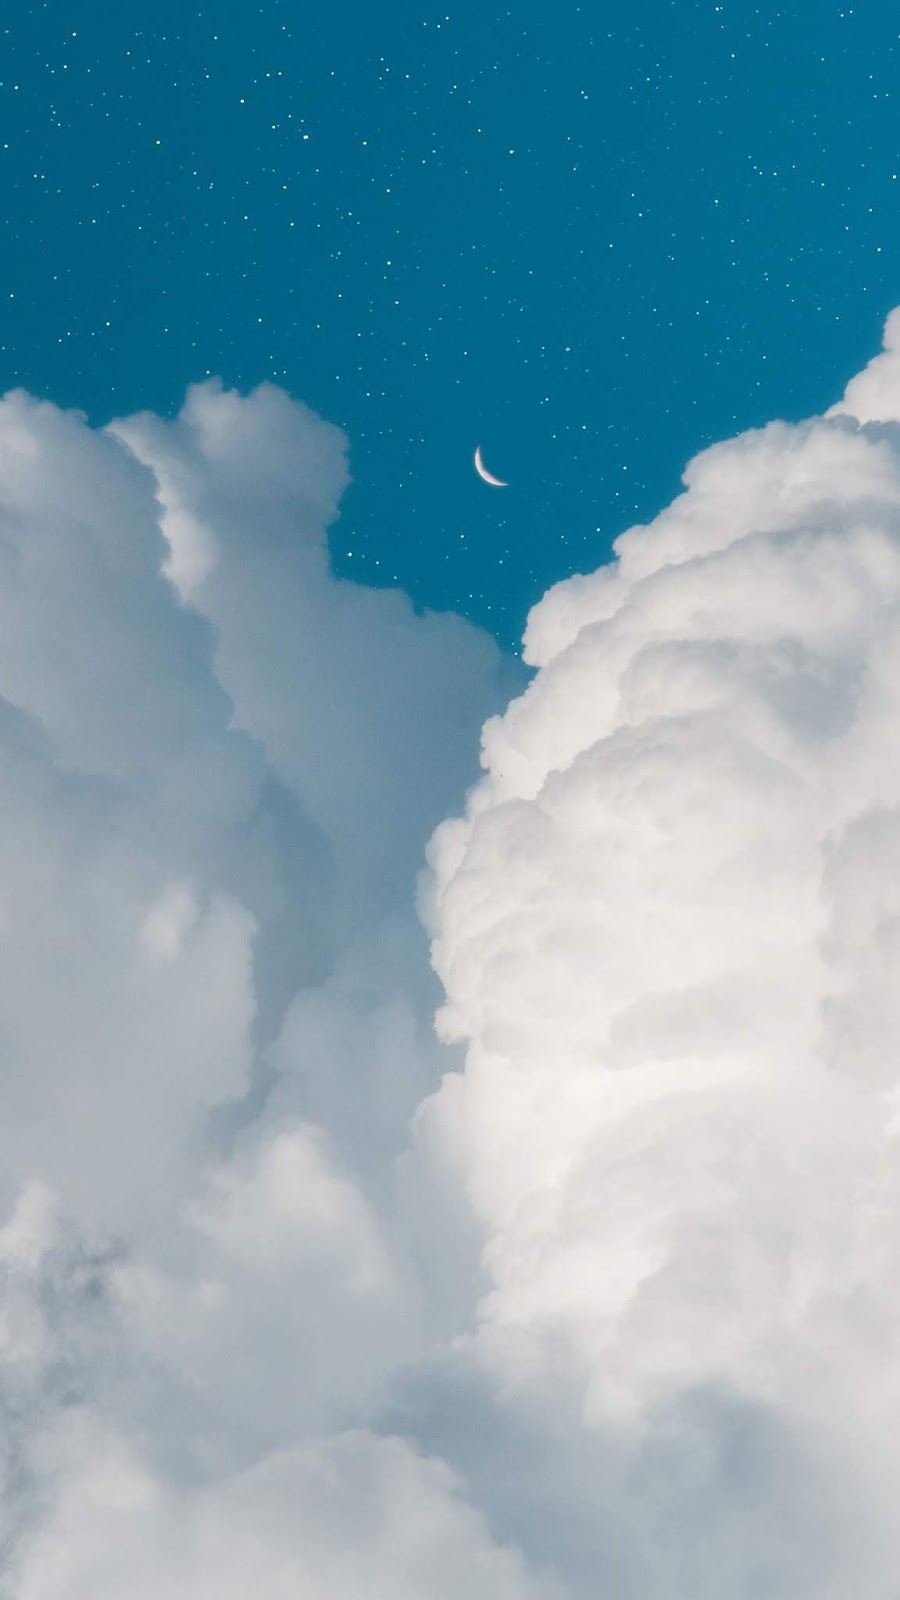 #Android Wallpaper, #Clouds, #Mobile, #Moon